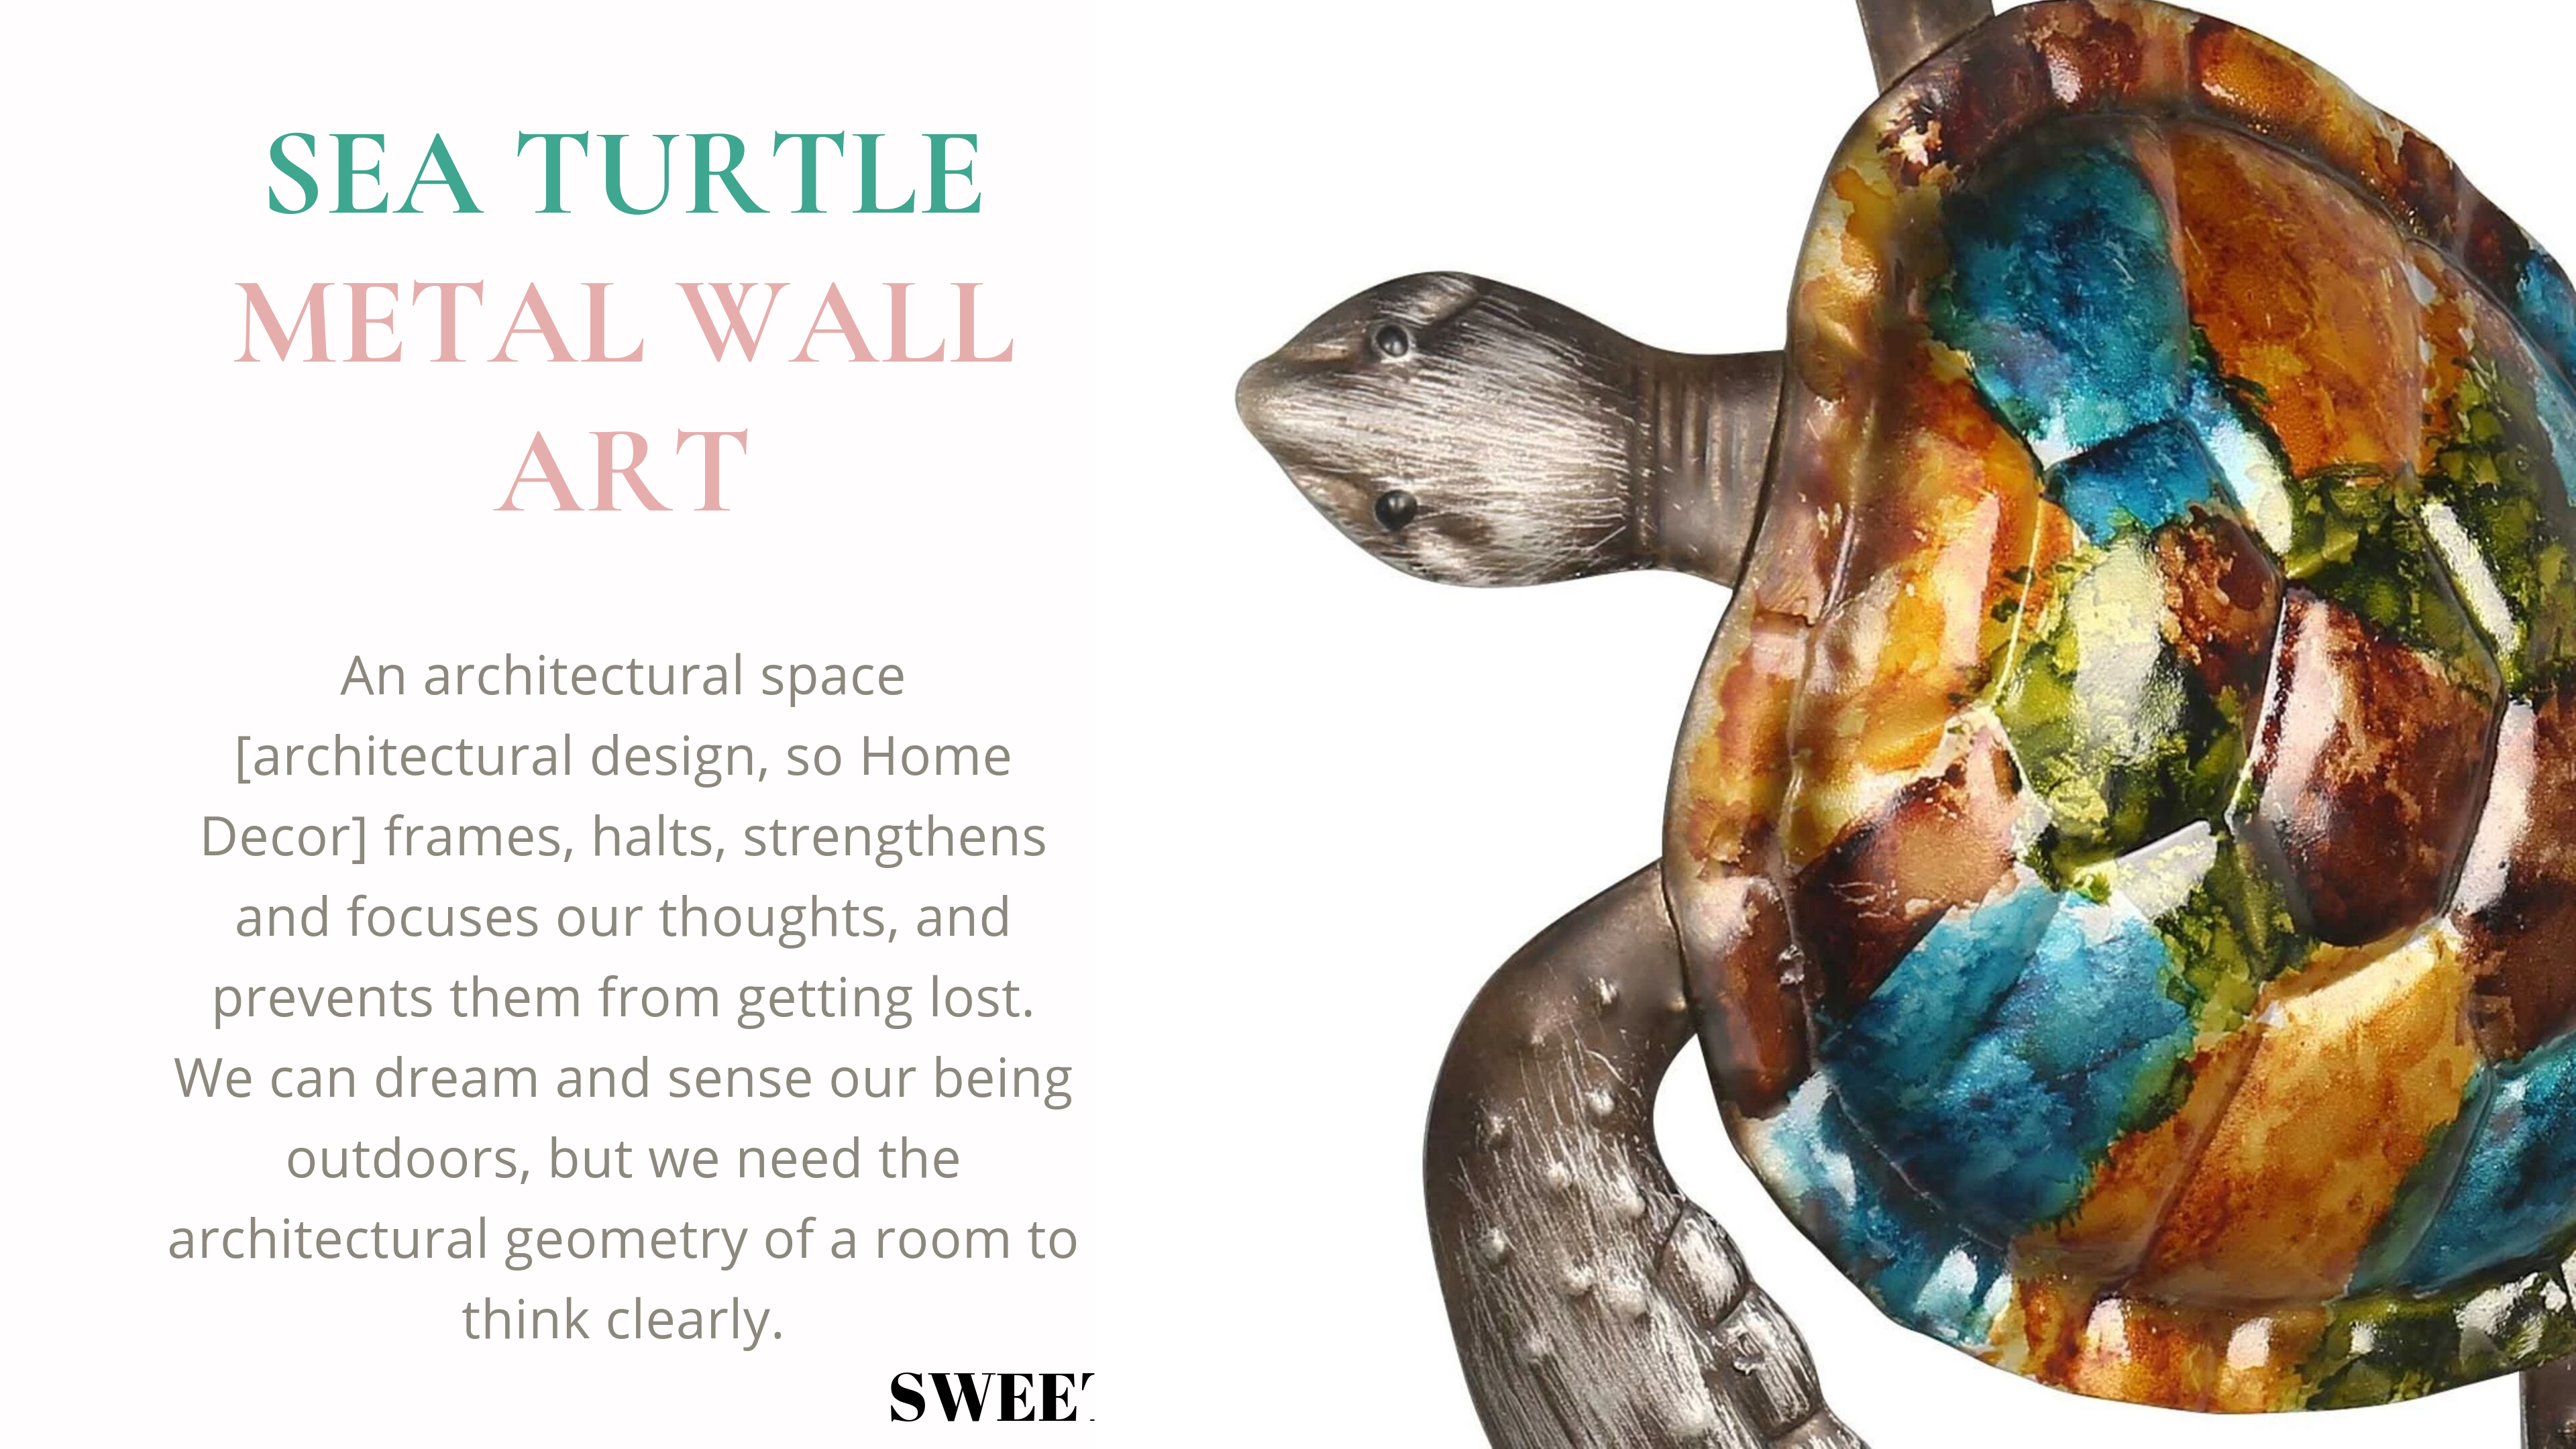 Sea Turtle Wall Art by Metal Bathroom Wall Decor